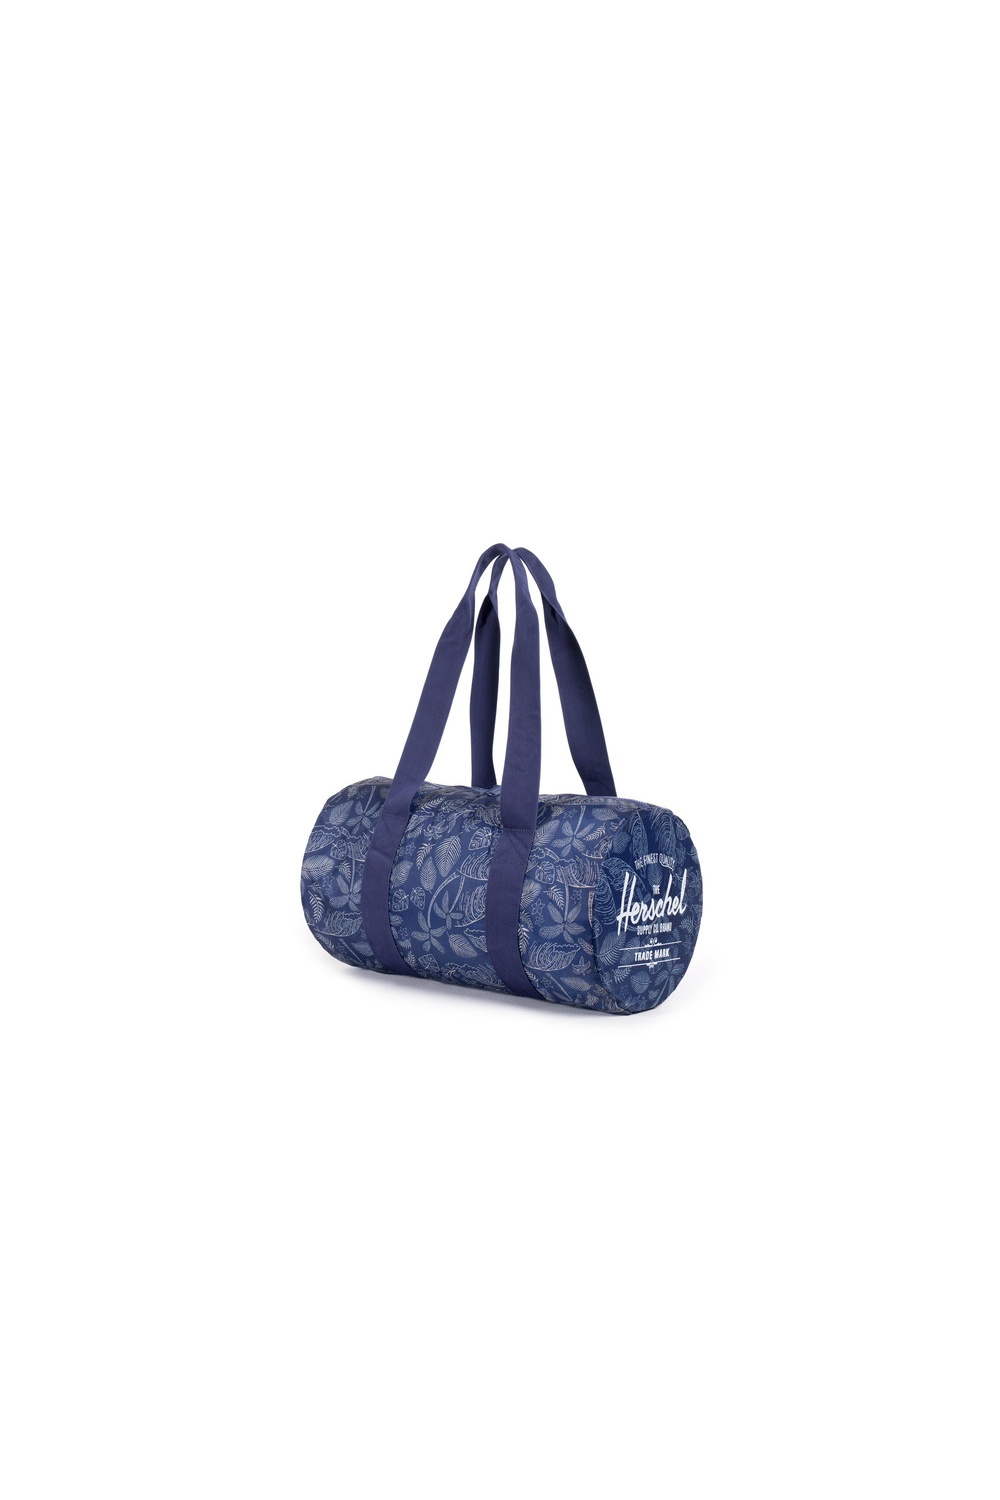 5fc4816c0308 Herschel Supply Co Packable Duffle Bag (Kingston) - Accessories from ...